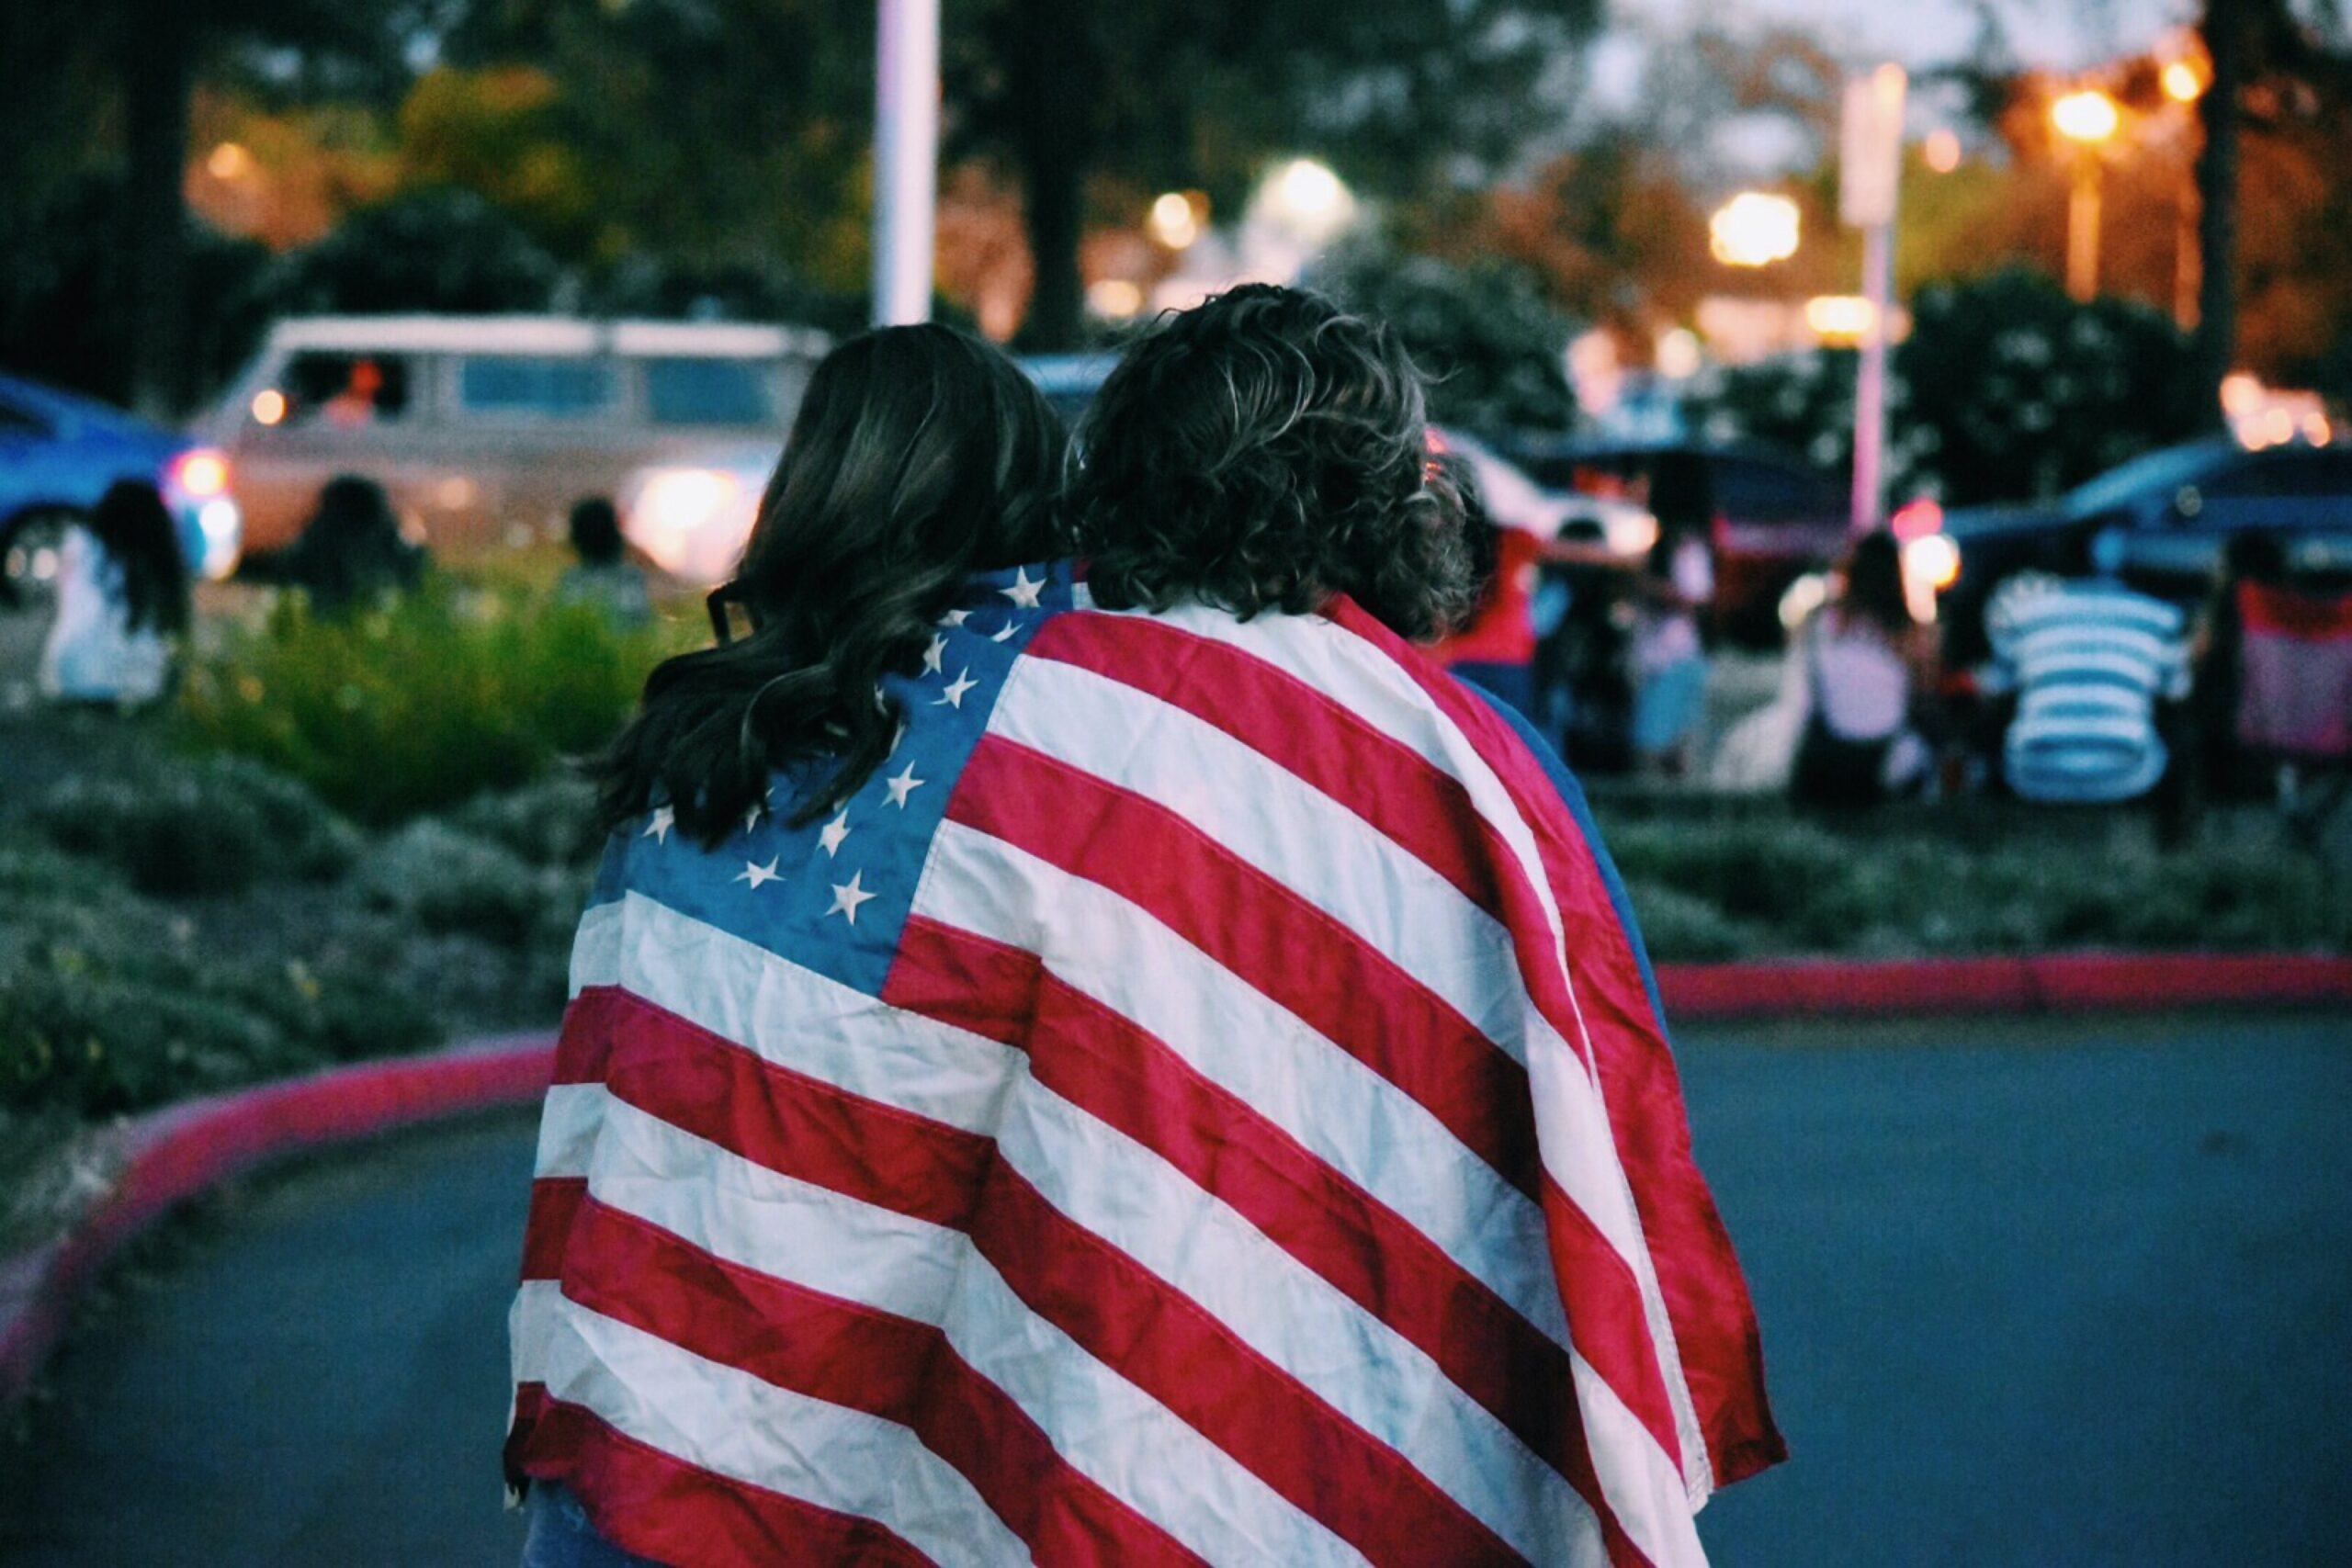 Two women embrace while draped in the American flag